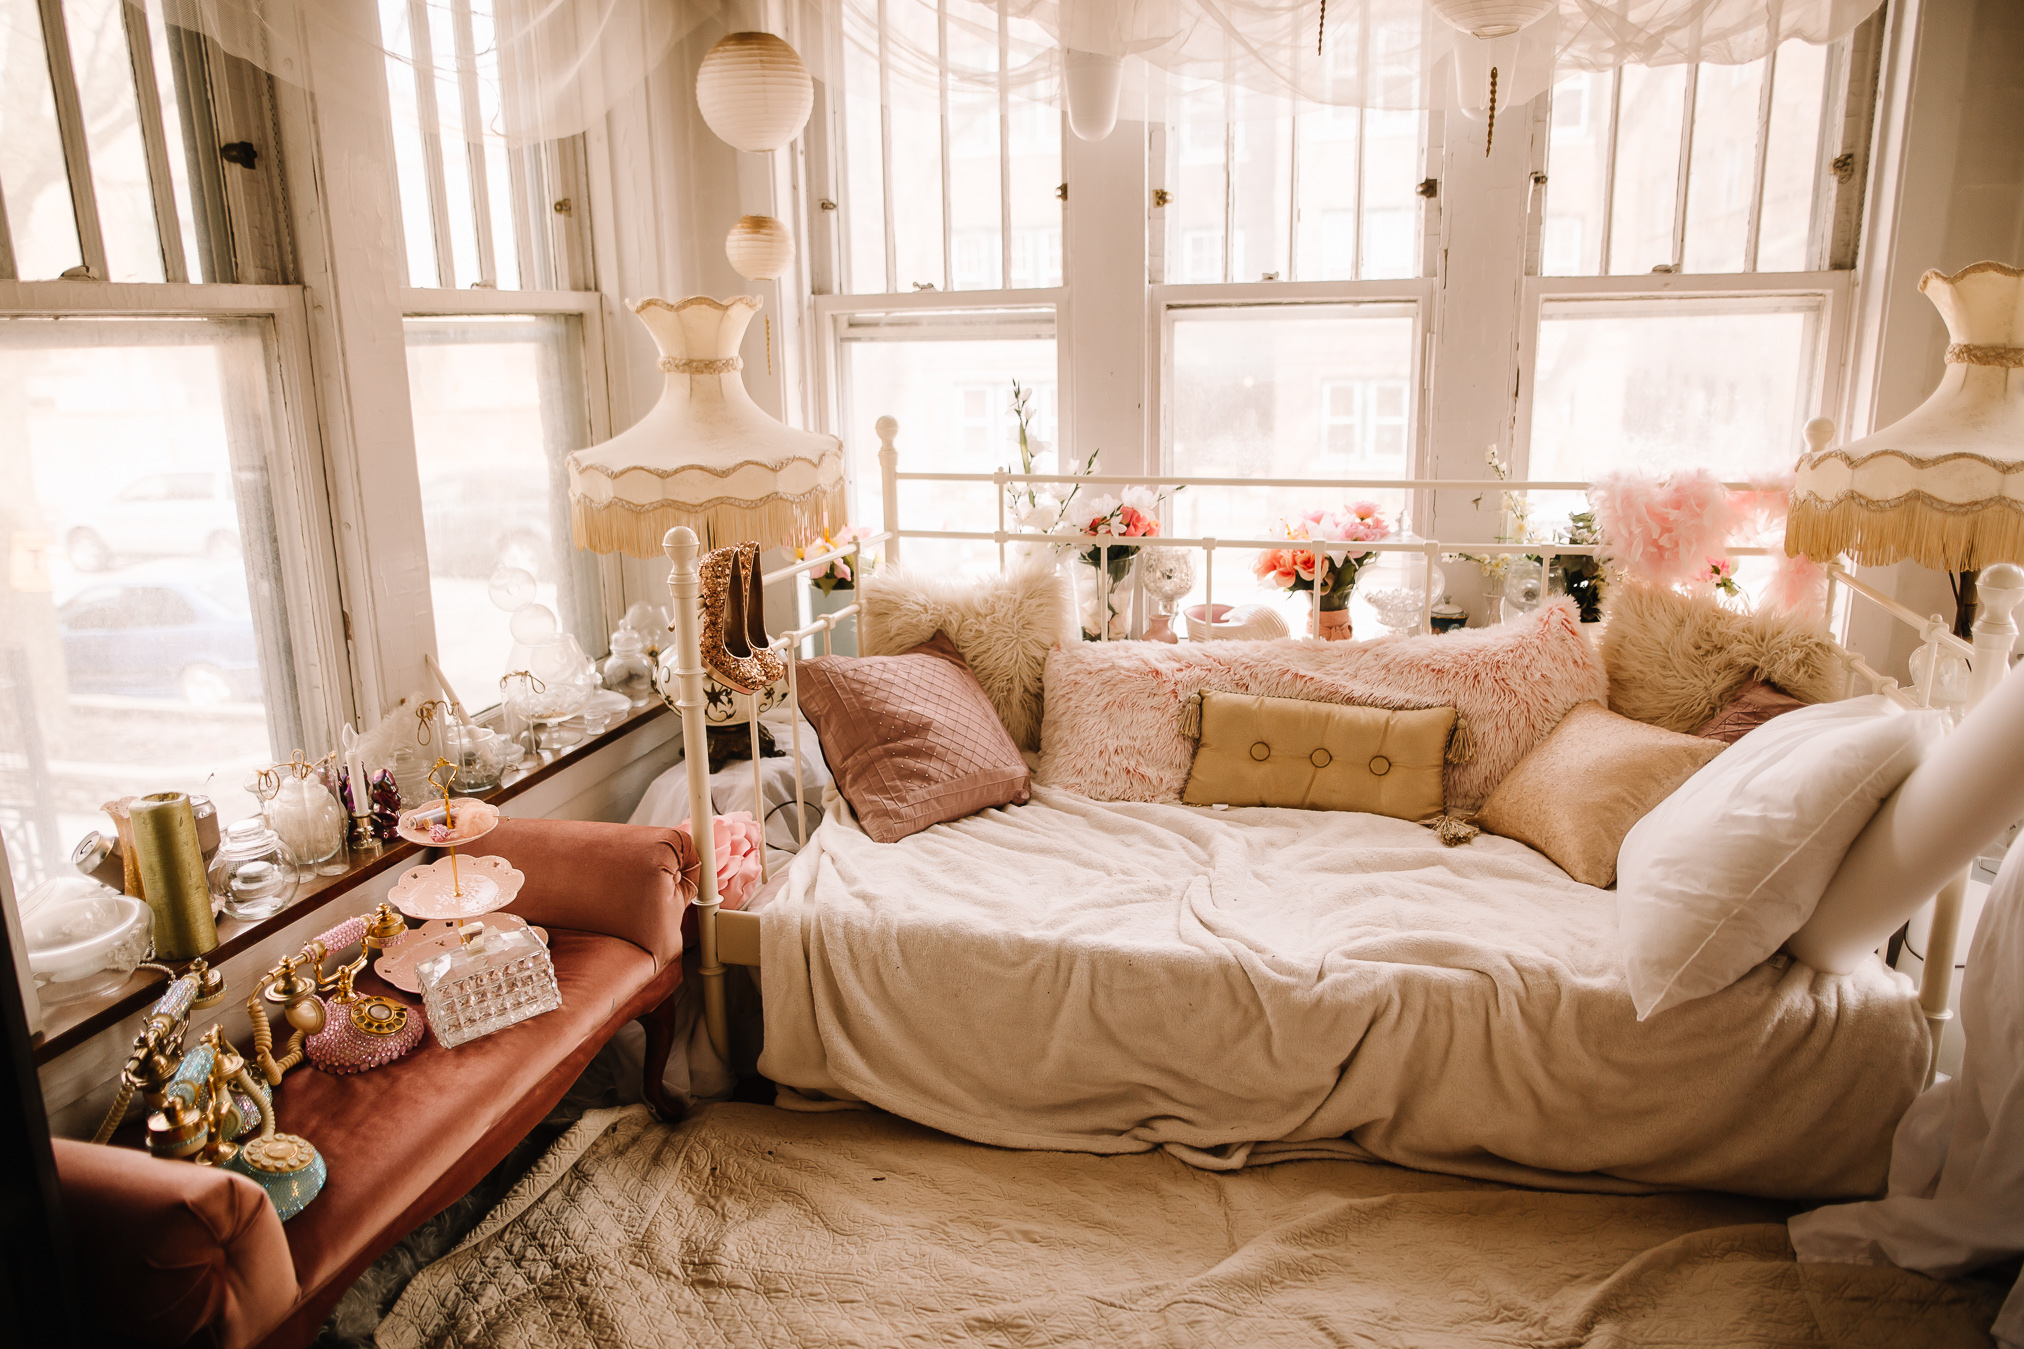 This room had so many beautiful little touches!